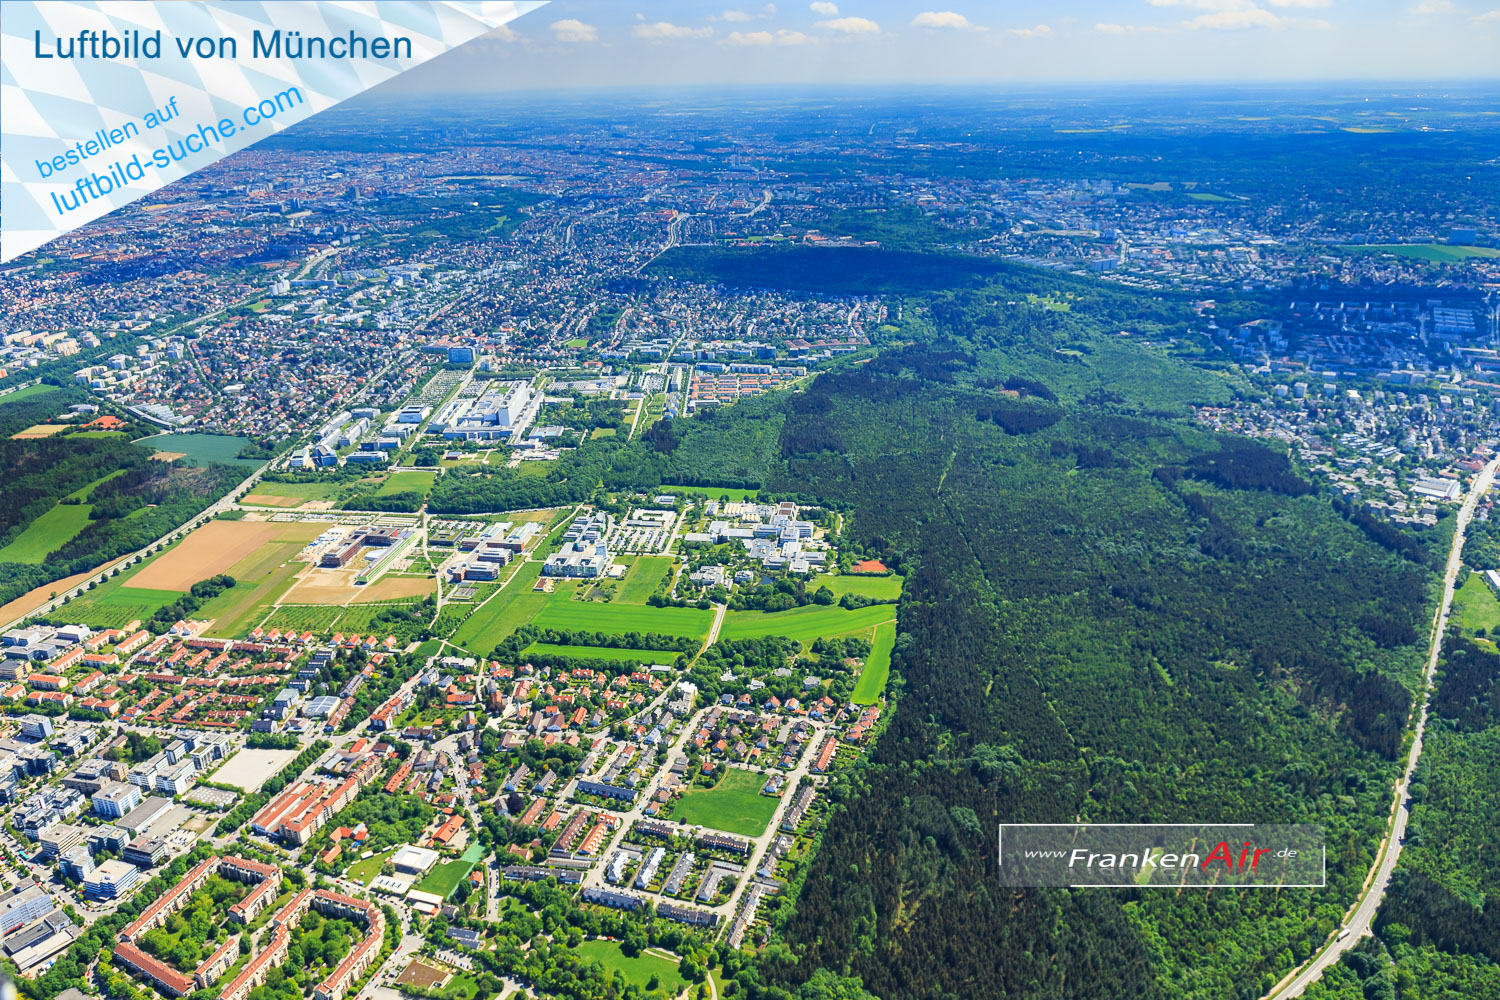 Martinsried Max-planck-institut Fuer Biochemie-neuried-2015-4072